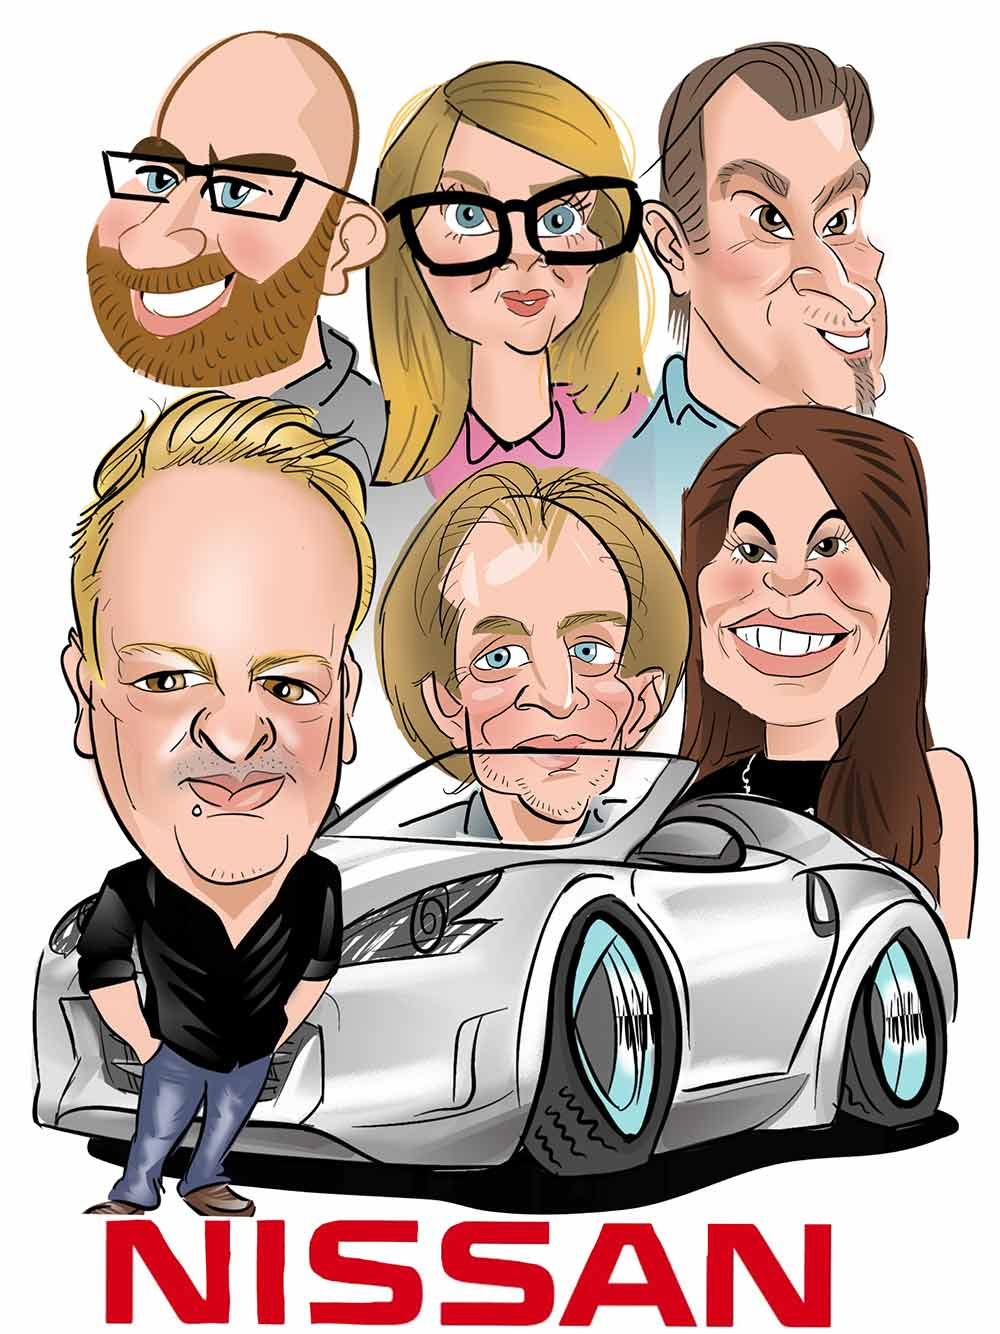 Group Caricature for nissan portrait size